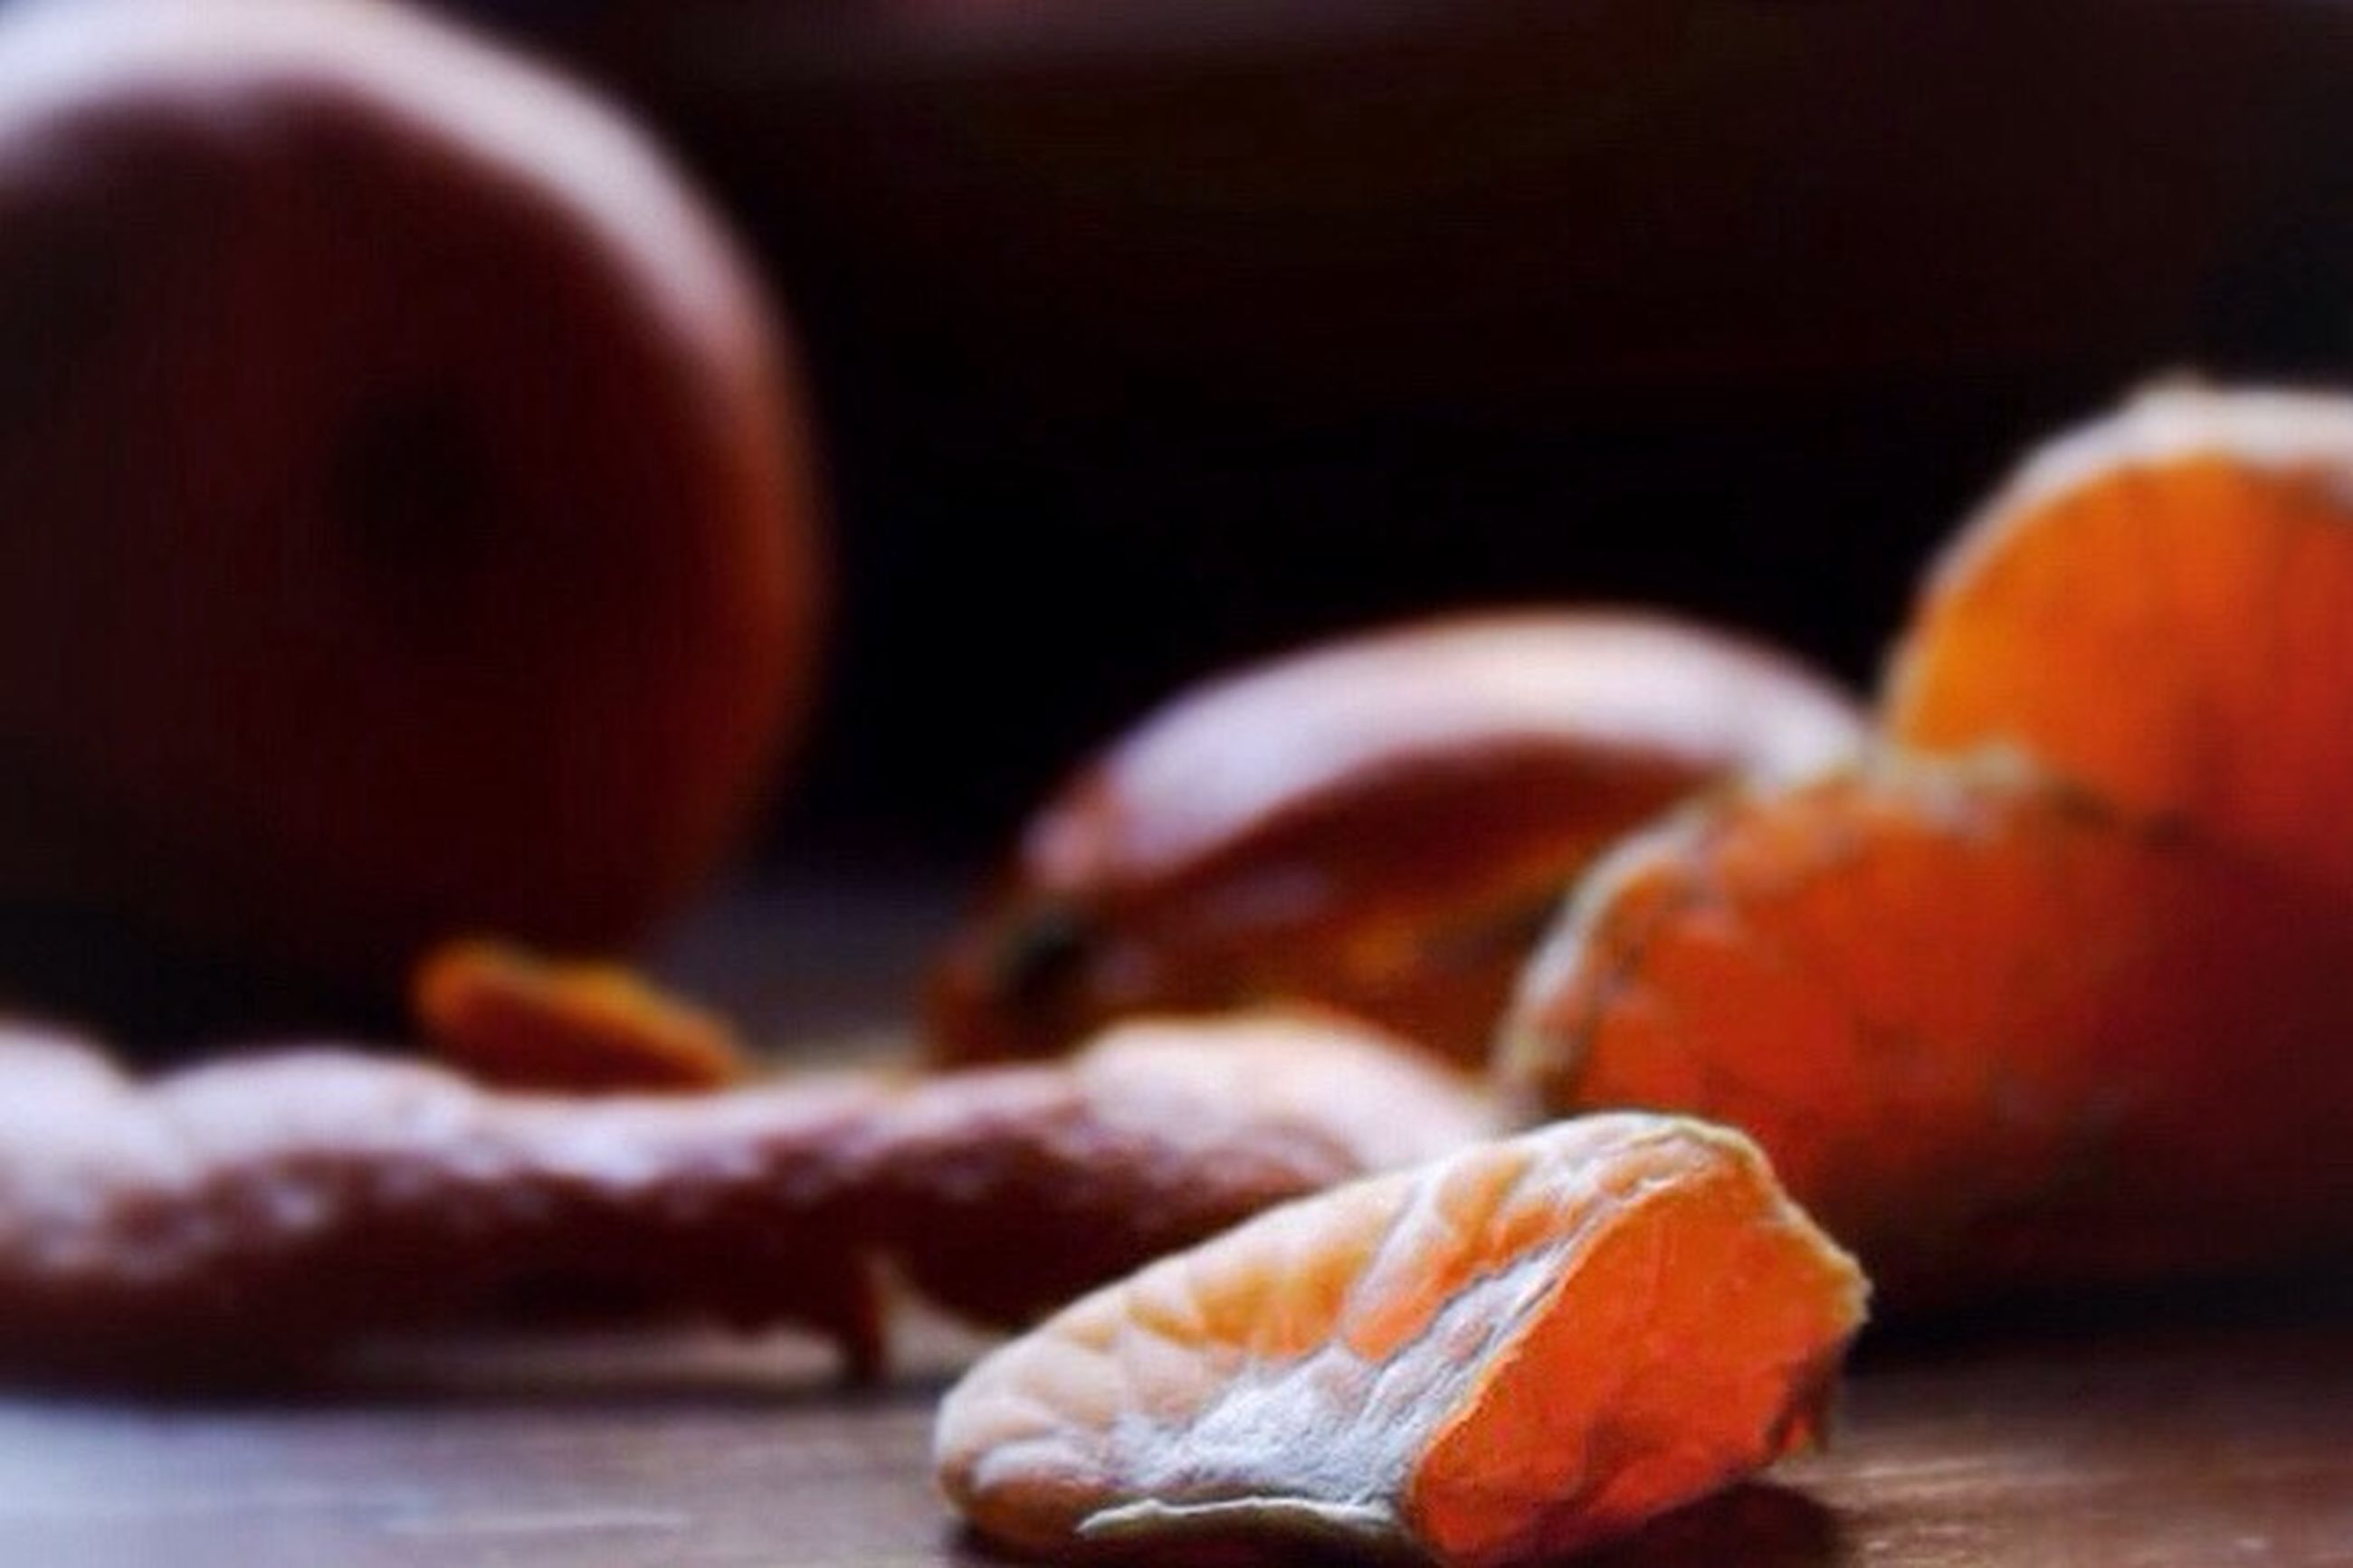 close-up, selective focus, focus on foreground, still life, table, orange color, indoors, food and drink, no people, freshness, healthy eating, food, brown, wood - material, red, day, detail, vegetable, surface level